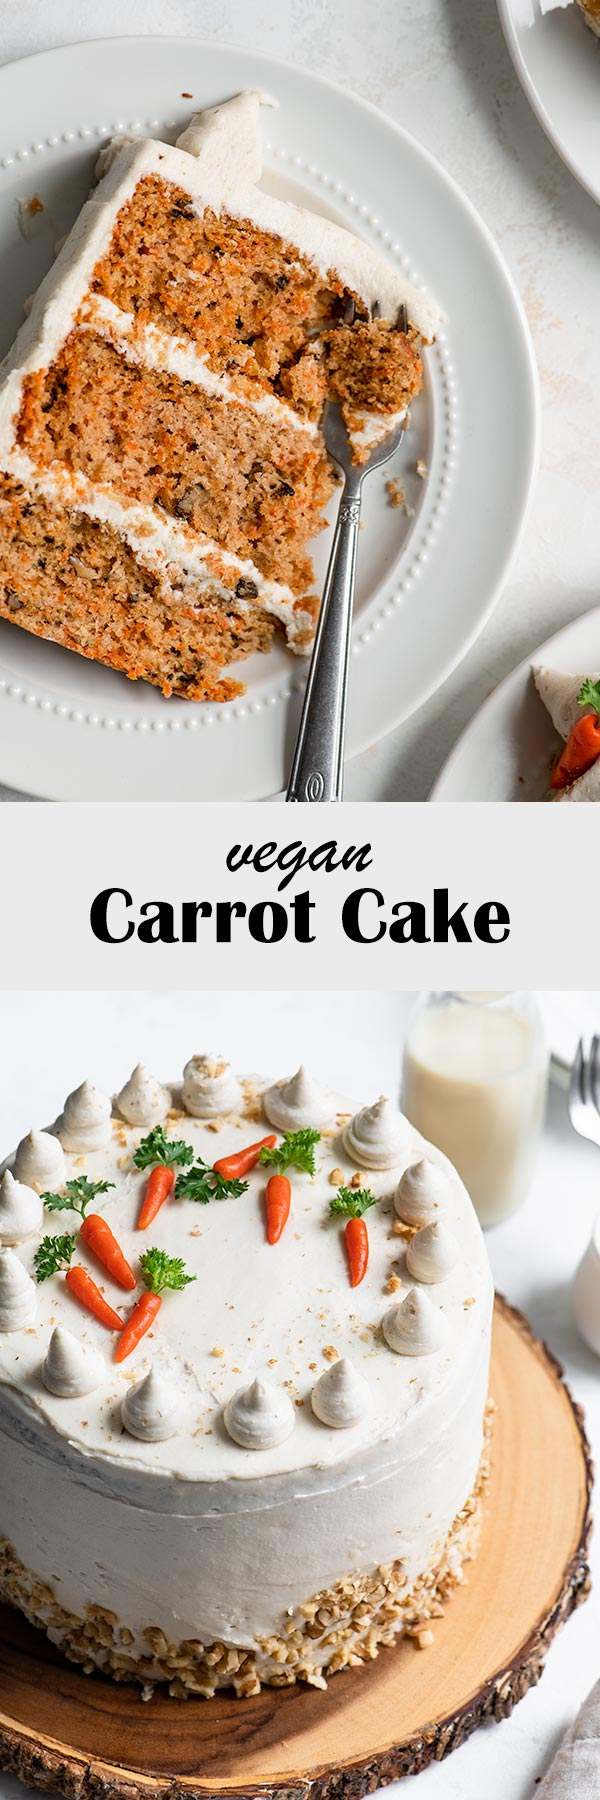 This easy vegan carrot cake is soft and tender, laced with cinnamon and nutmeg, and frosted with a vegan cream cheese frosting. It's a cake that is sure to impress! #veganbaking #vegancake #vegandessert #carrotcake #vegancarrotcake #dessert #cake #baking #layercake